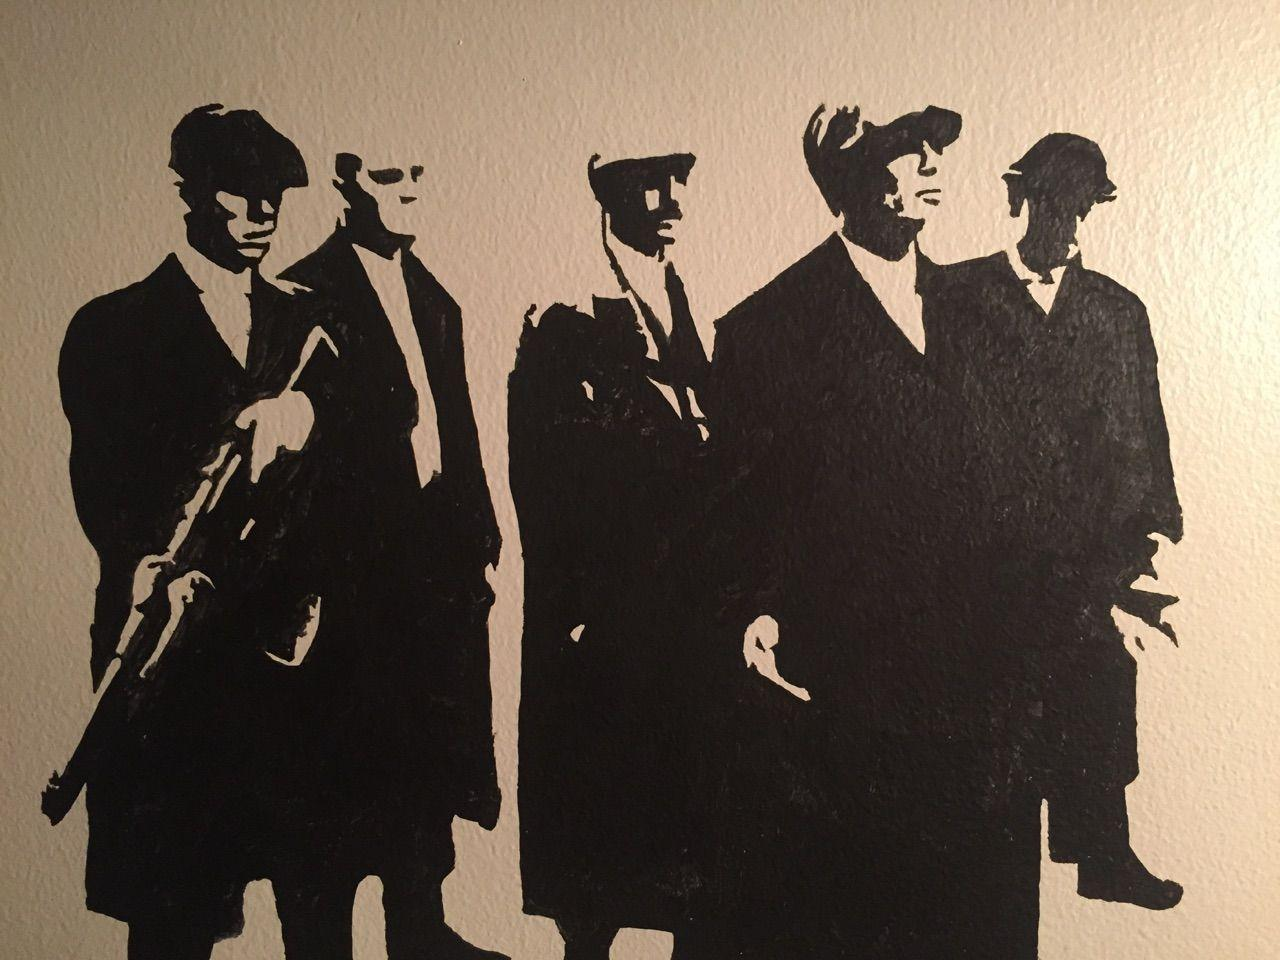 Peaky Blinders projector wall art I made!